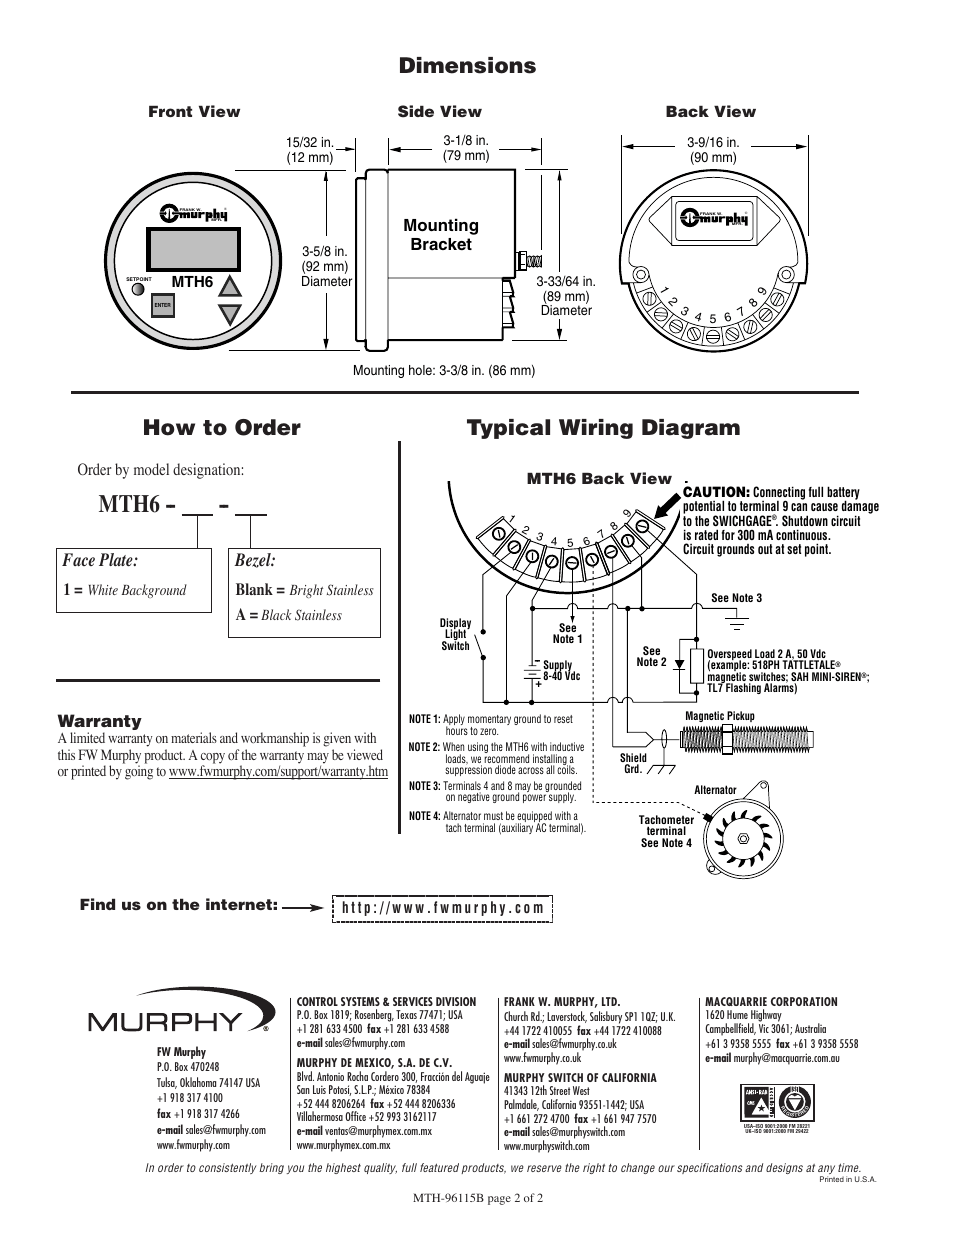 hight resolution of mth6 typical wiring diagram how to order dimensions murphy mth6 murphy switch wiring diagrams